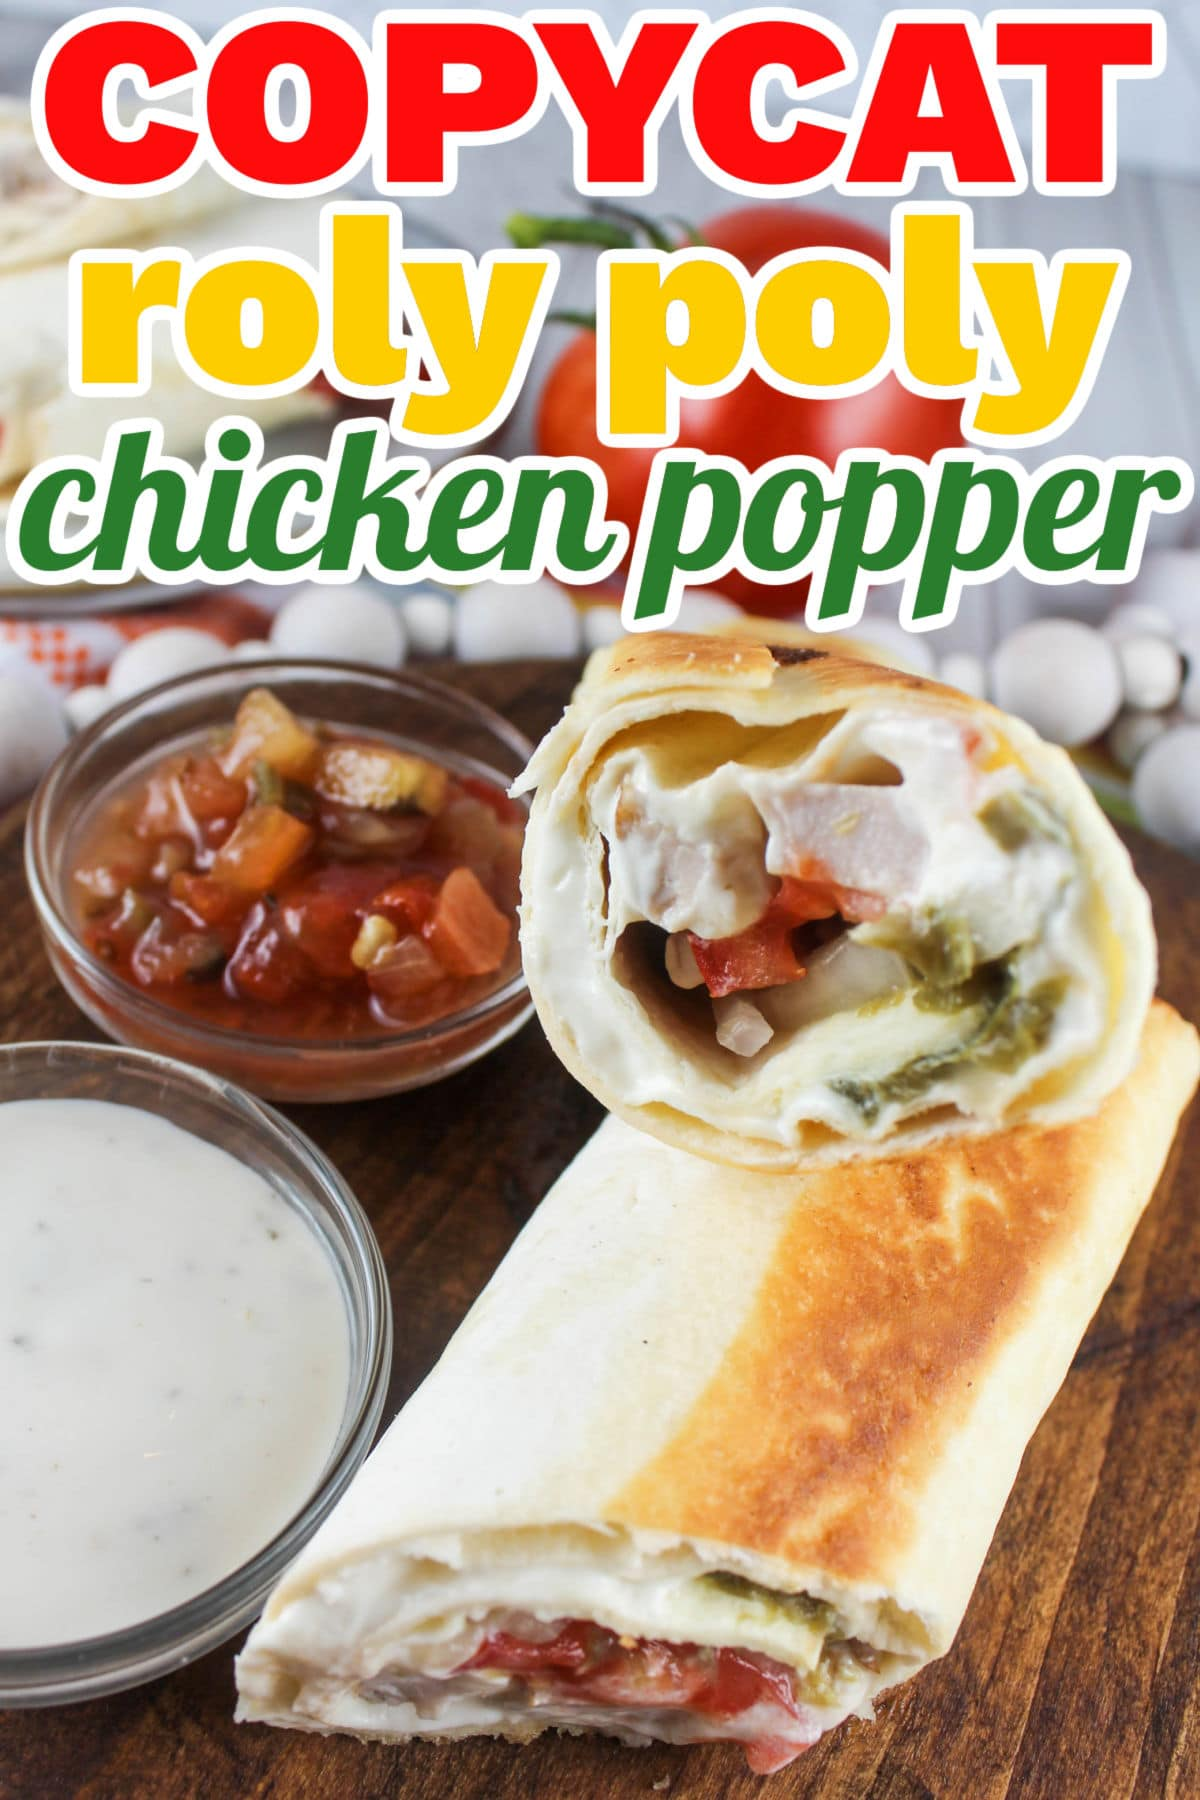 This Chicken Popper Wrap is my favorite lunchtime treat! Roly Poly was my favorite go-to stop for a healthy lunch. This wrap is filled with chicken, cream cheese, jalapenos and yummy veggies and you'll want to make it every day - especially because you're saving calories too!  via @foodhussy